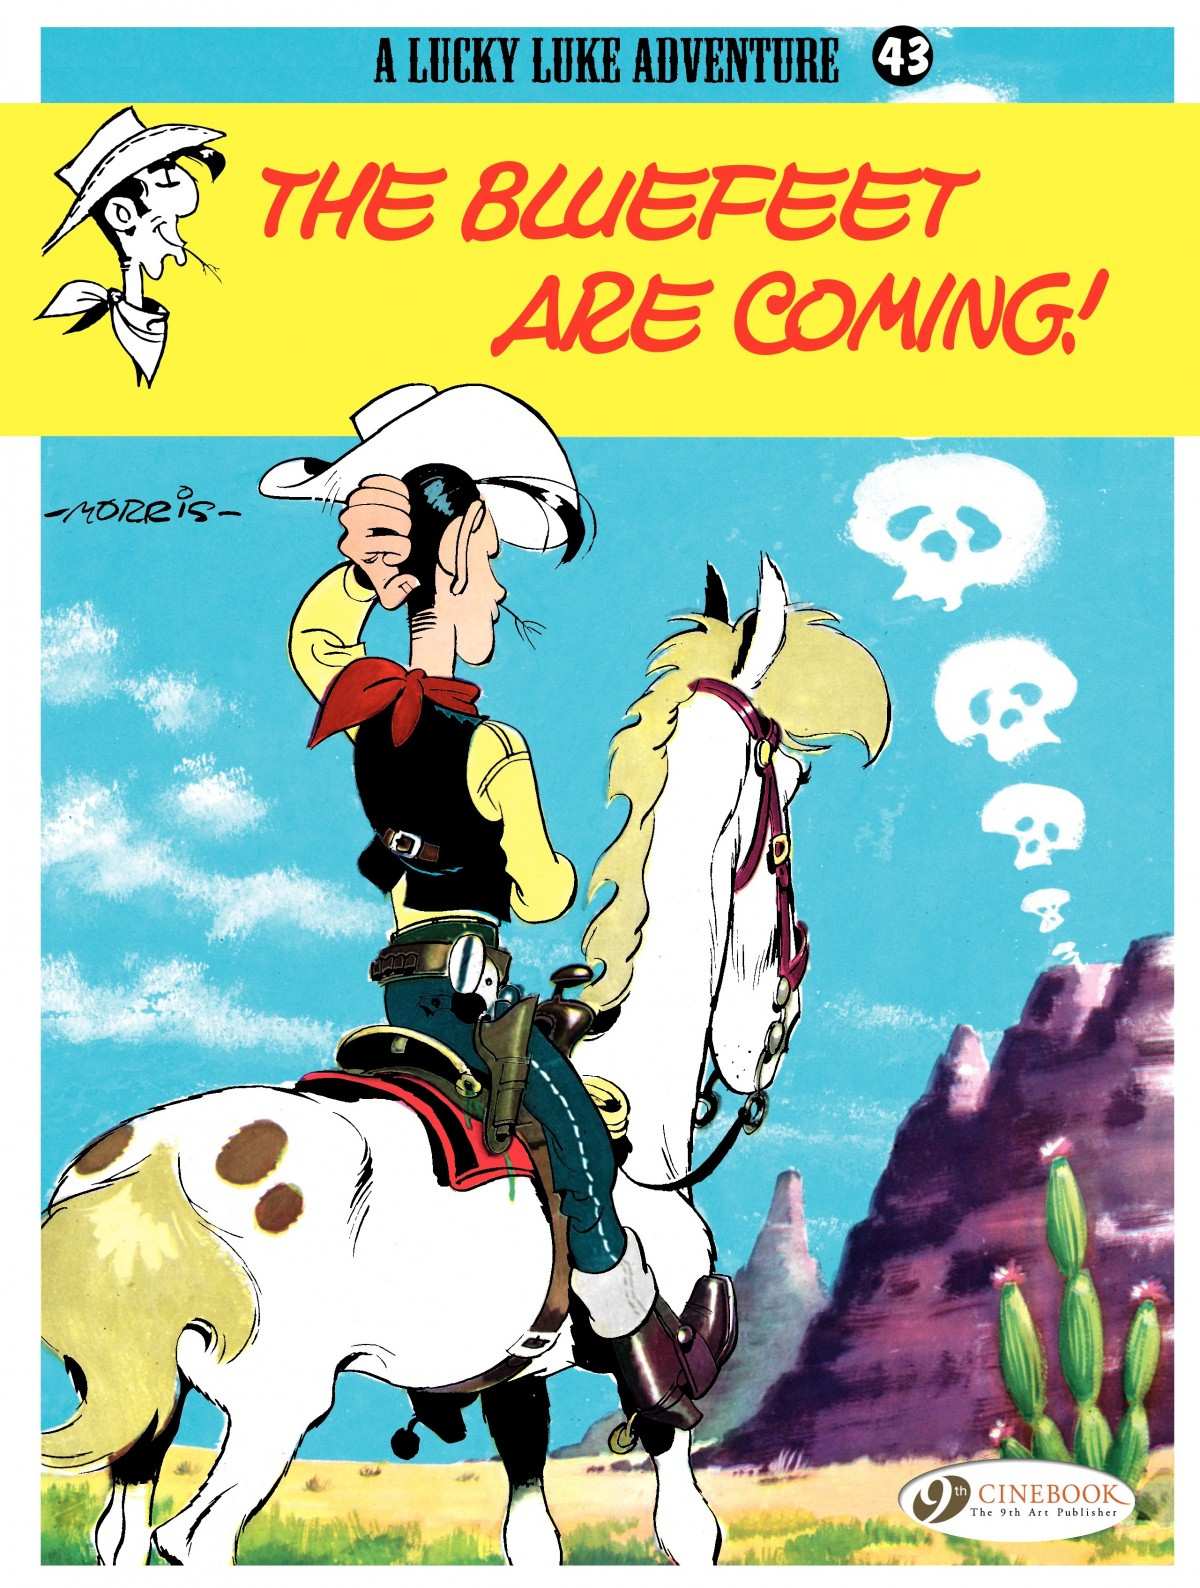 Read online A Lucky Luke Adventure comic -  Issue #43 - 1